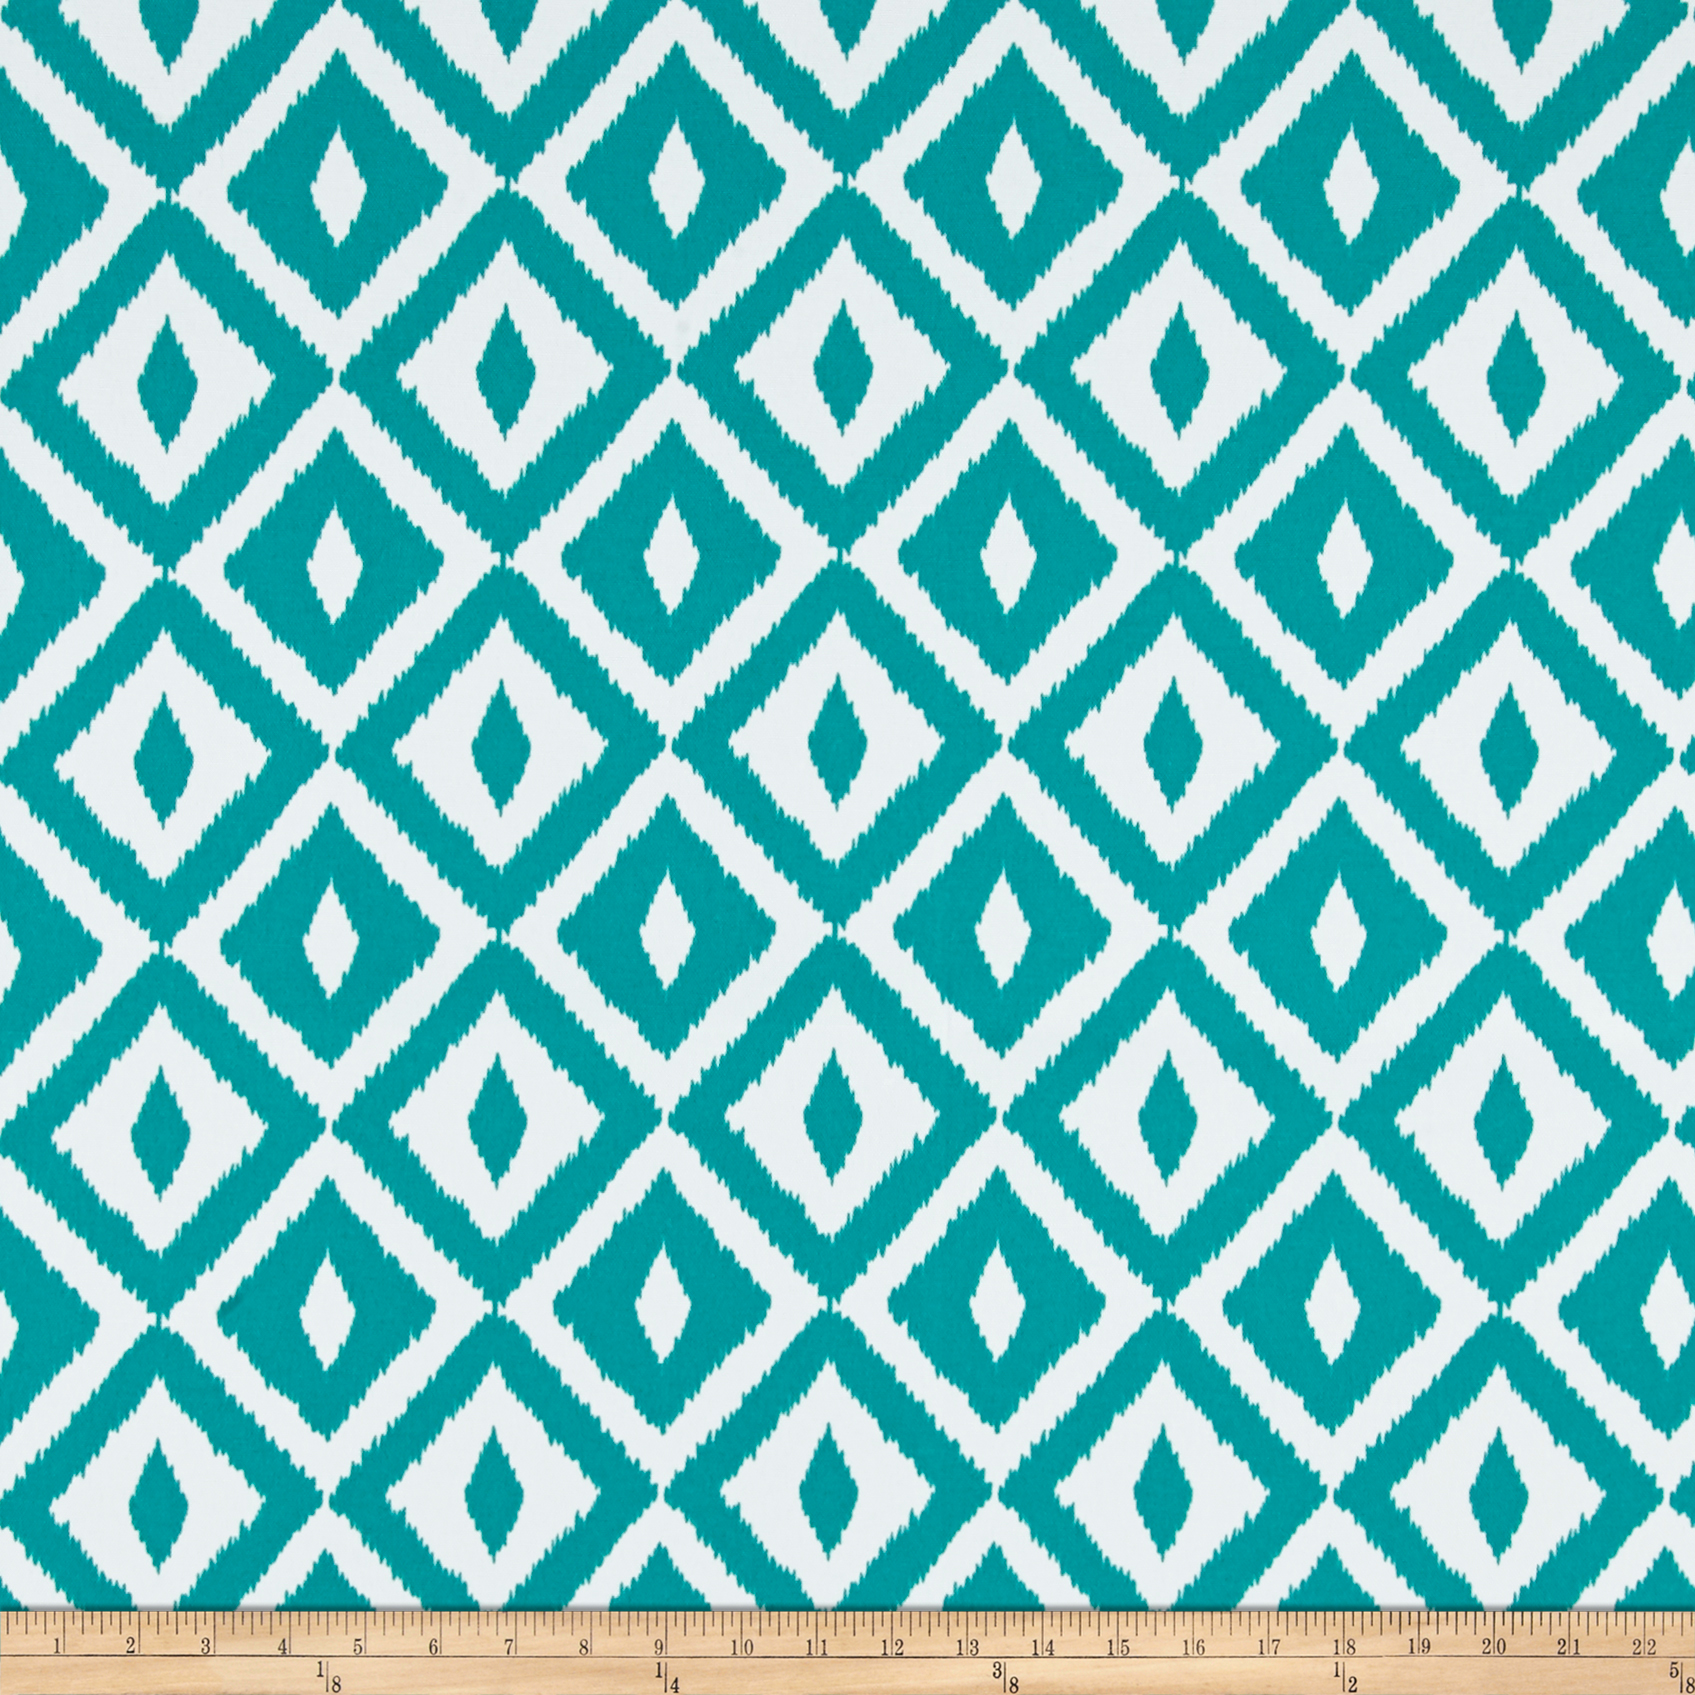 Terrasol Outdoor Aztec Teal Fabric by Tempro in USA